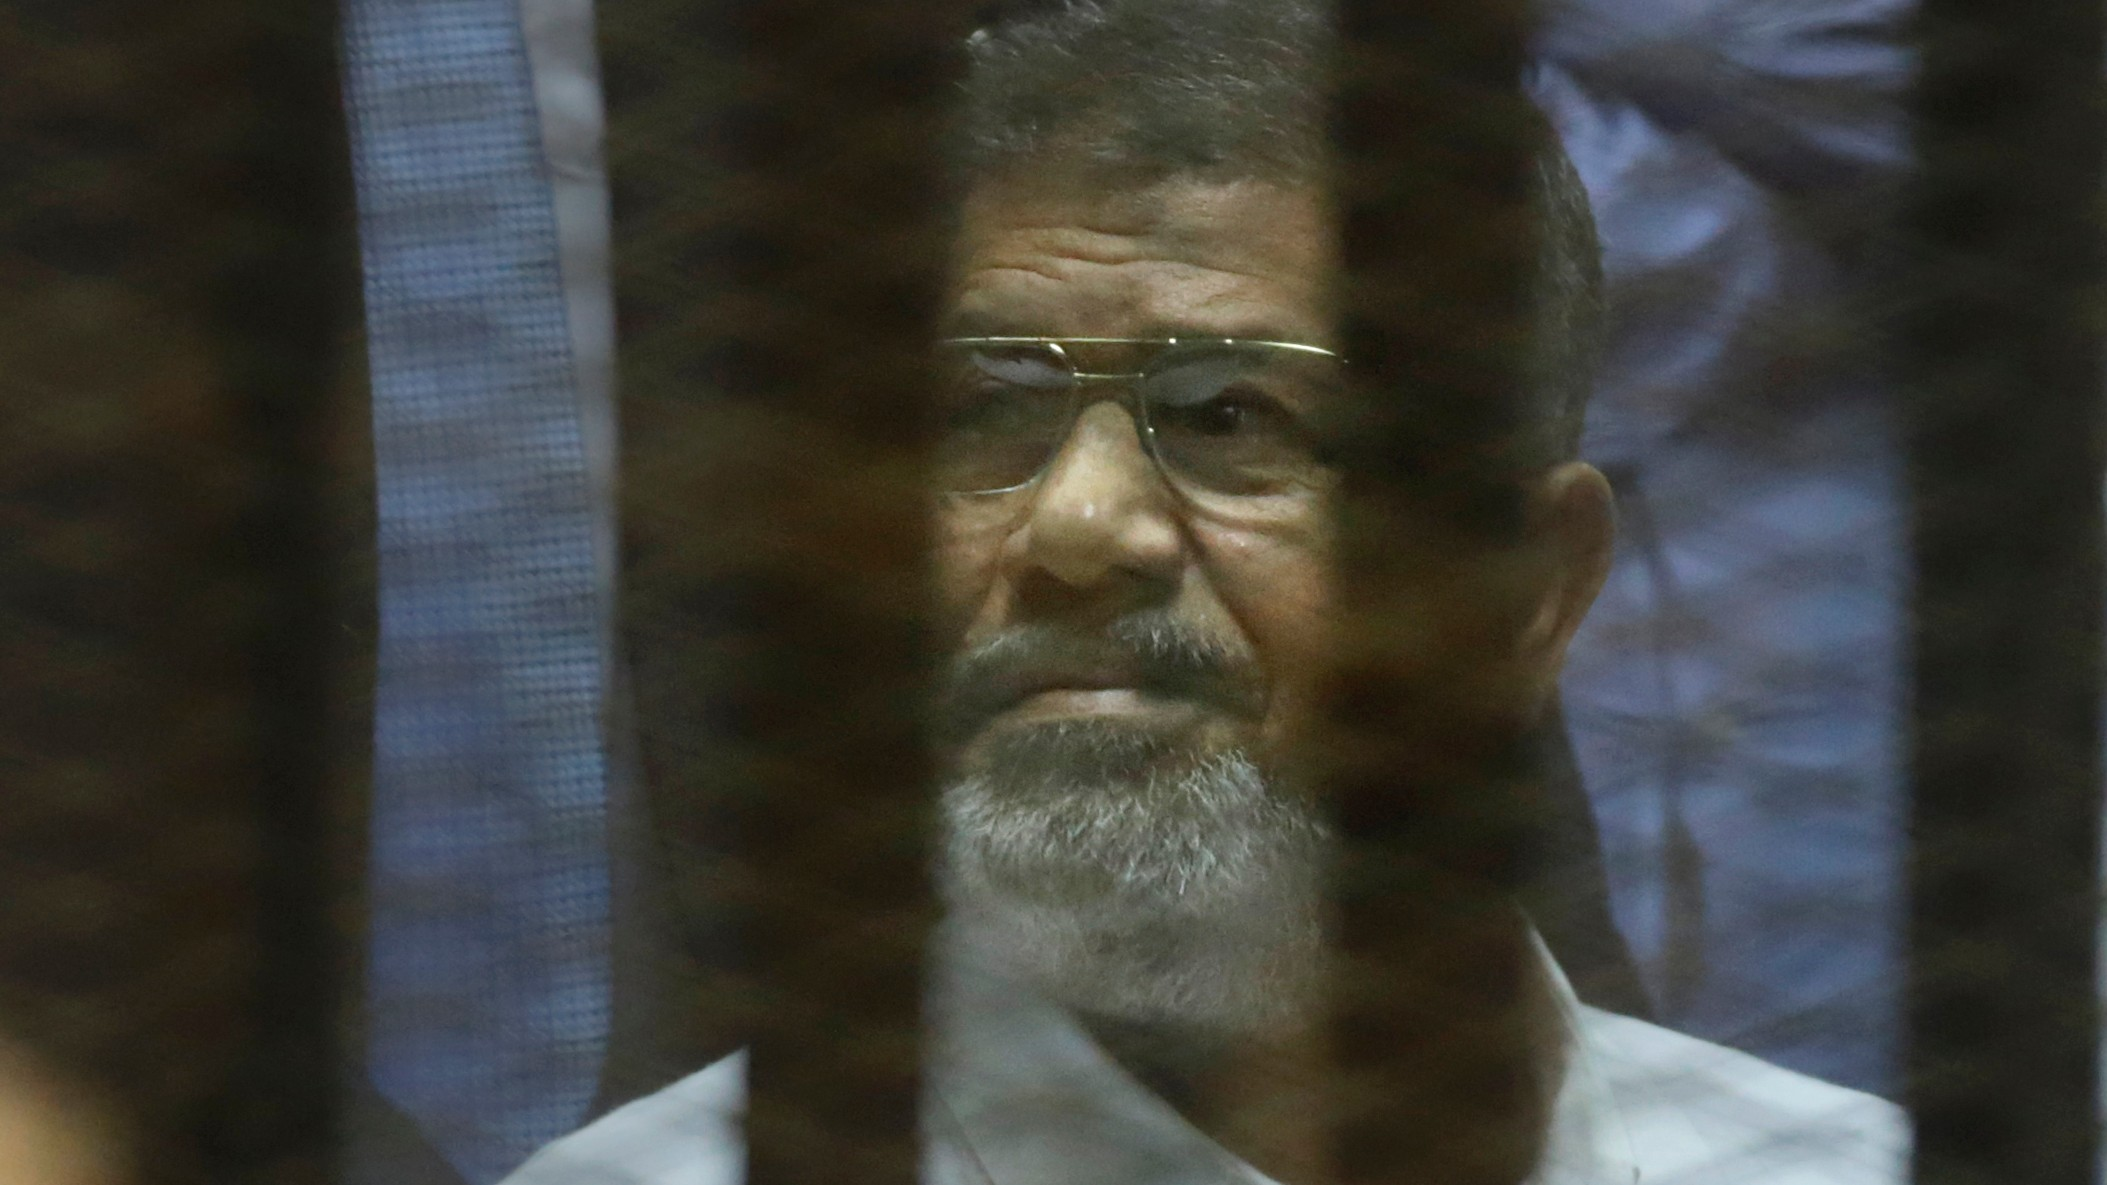 Mohammad Morsi, Egypt's First Democratically Elected President, Just Collapsed and Died in Court